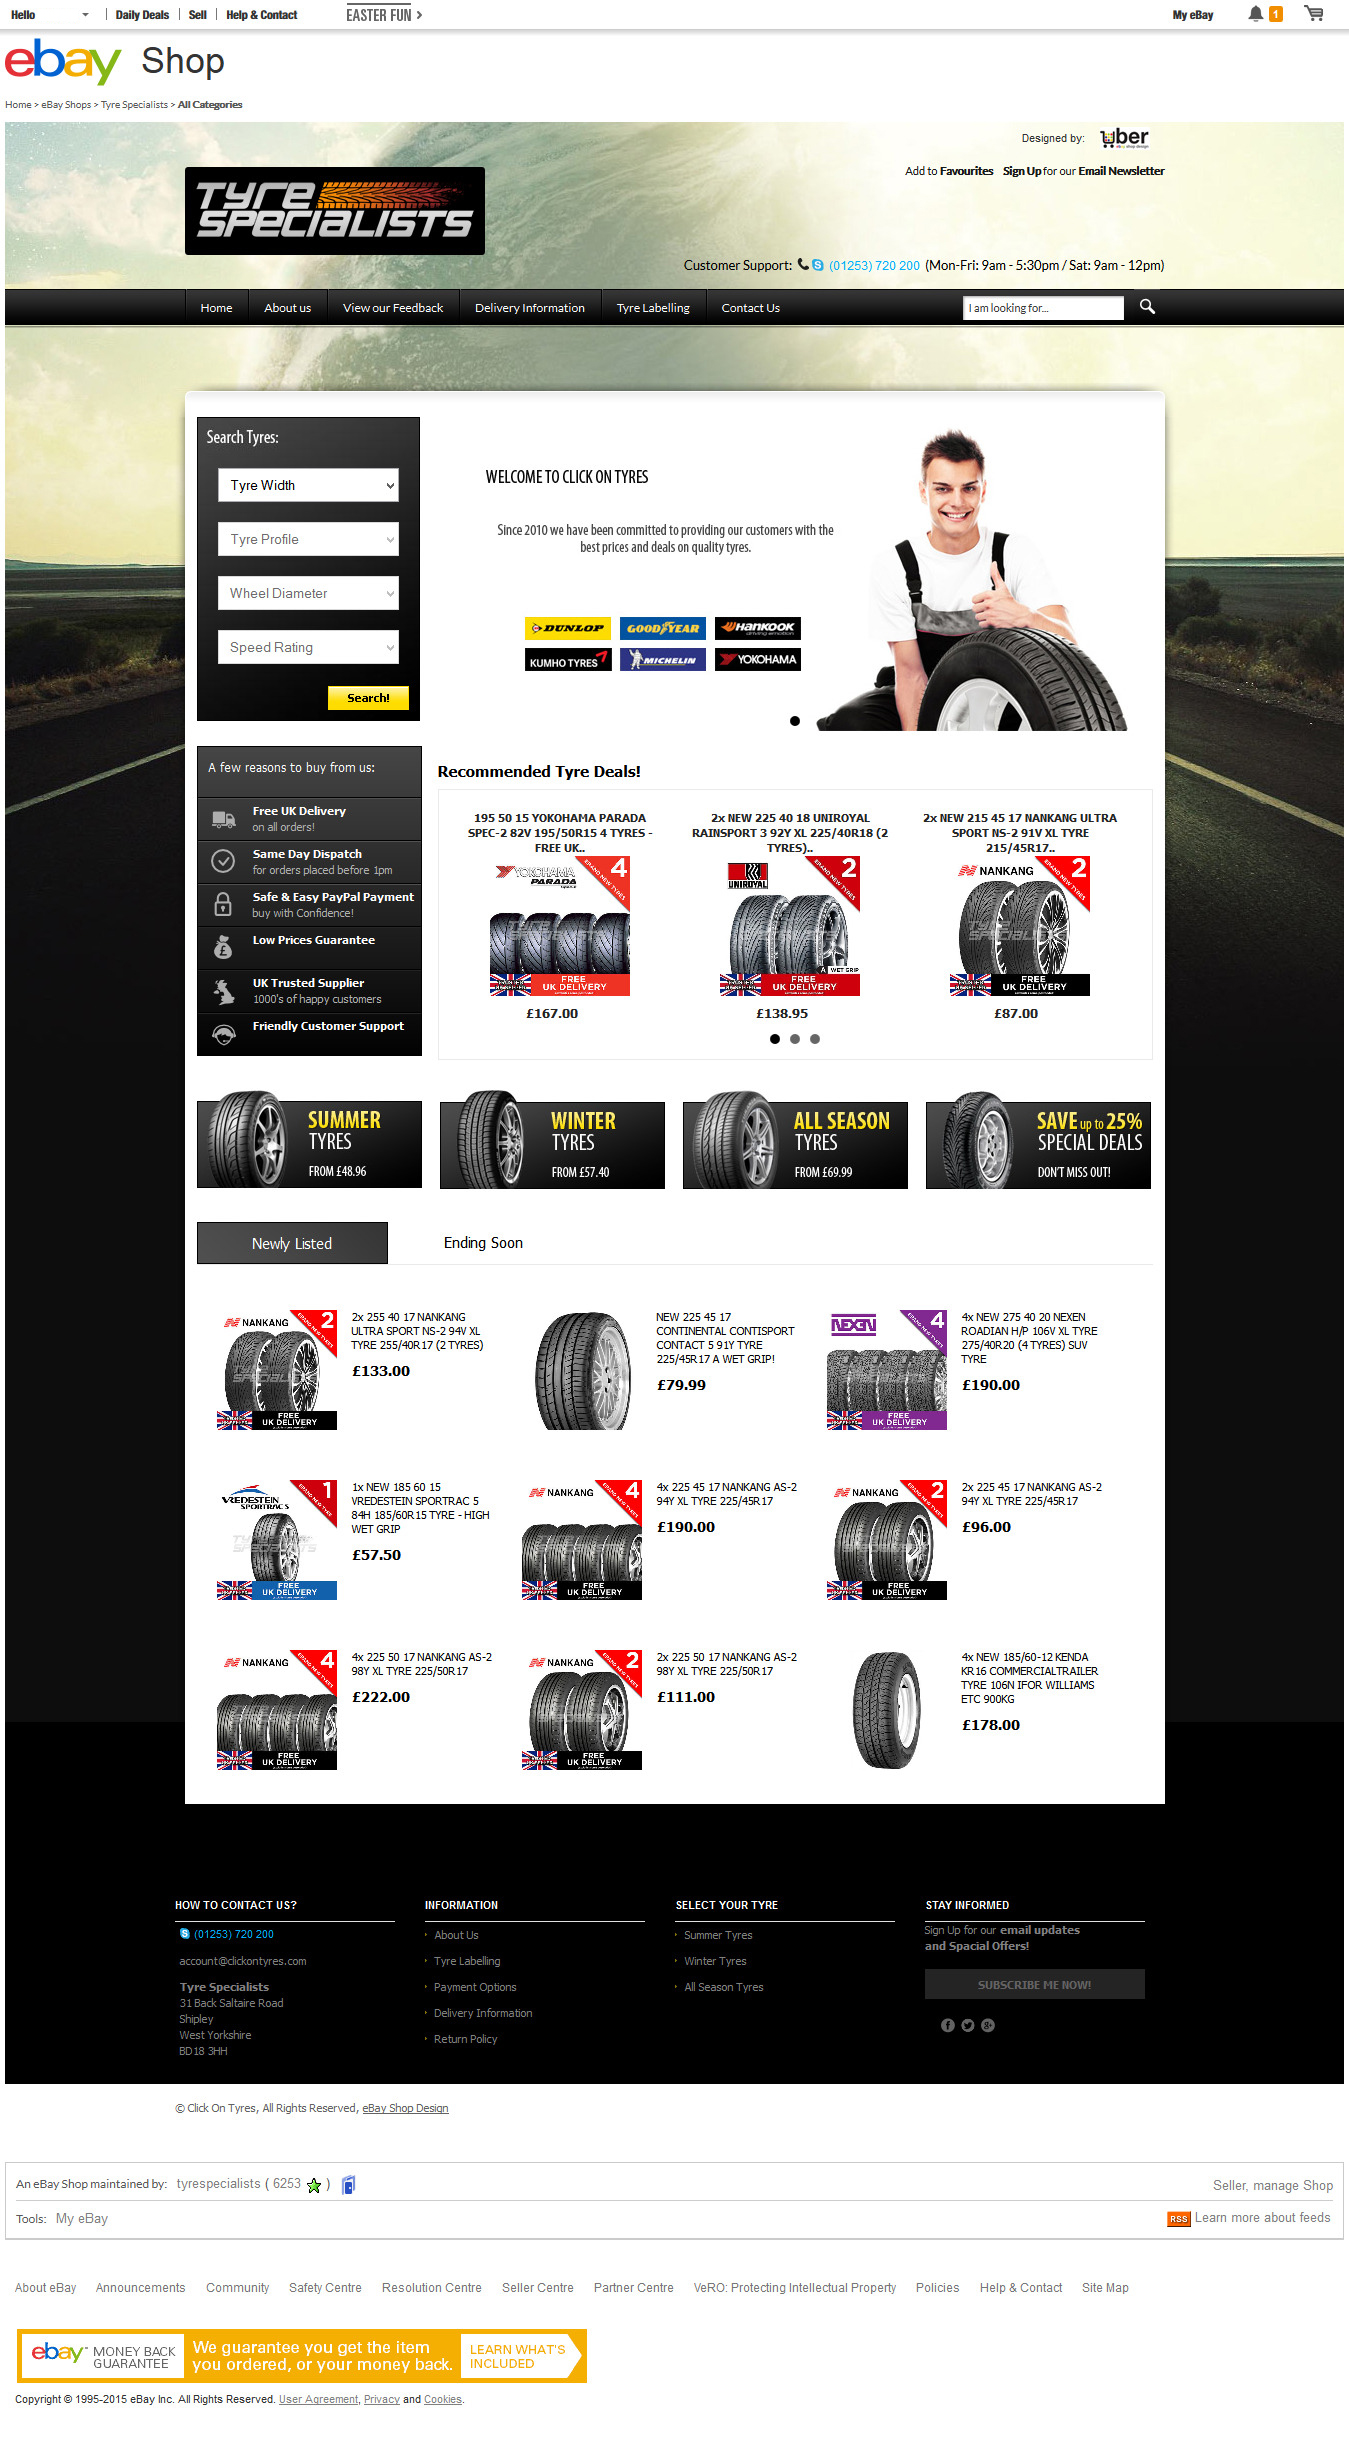 Tyre Specialists ebay shop design home page